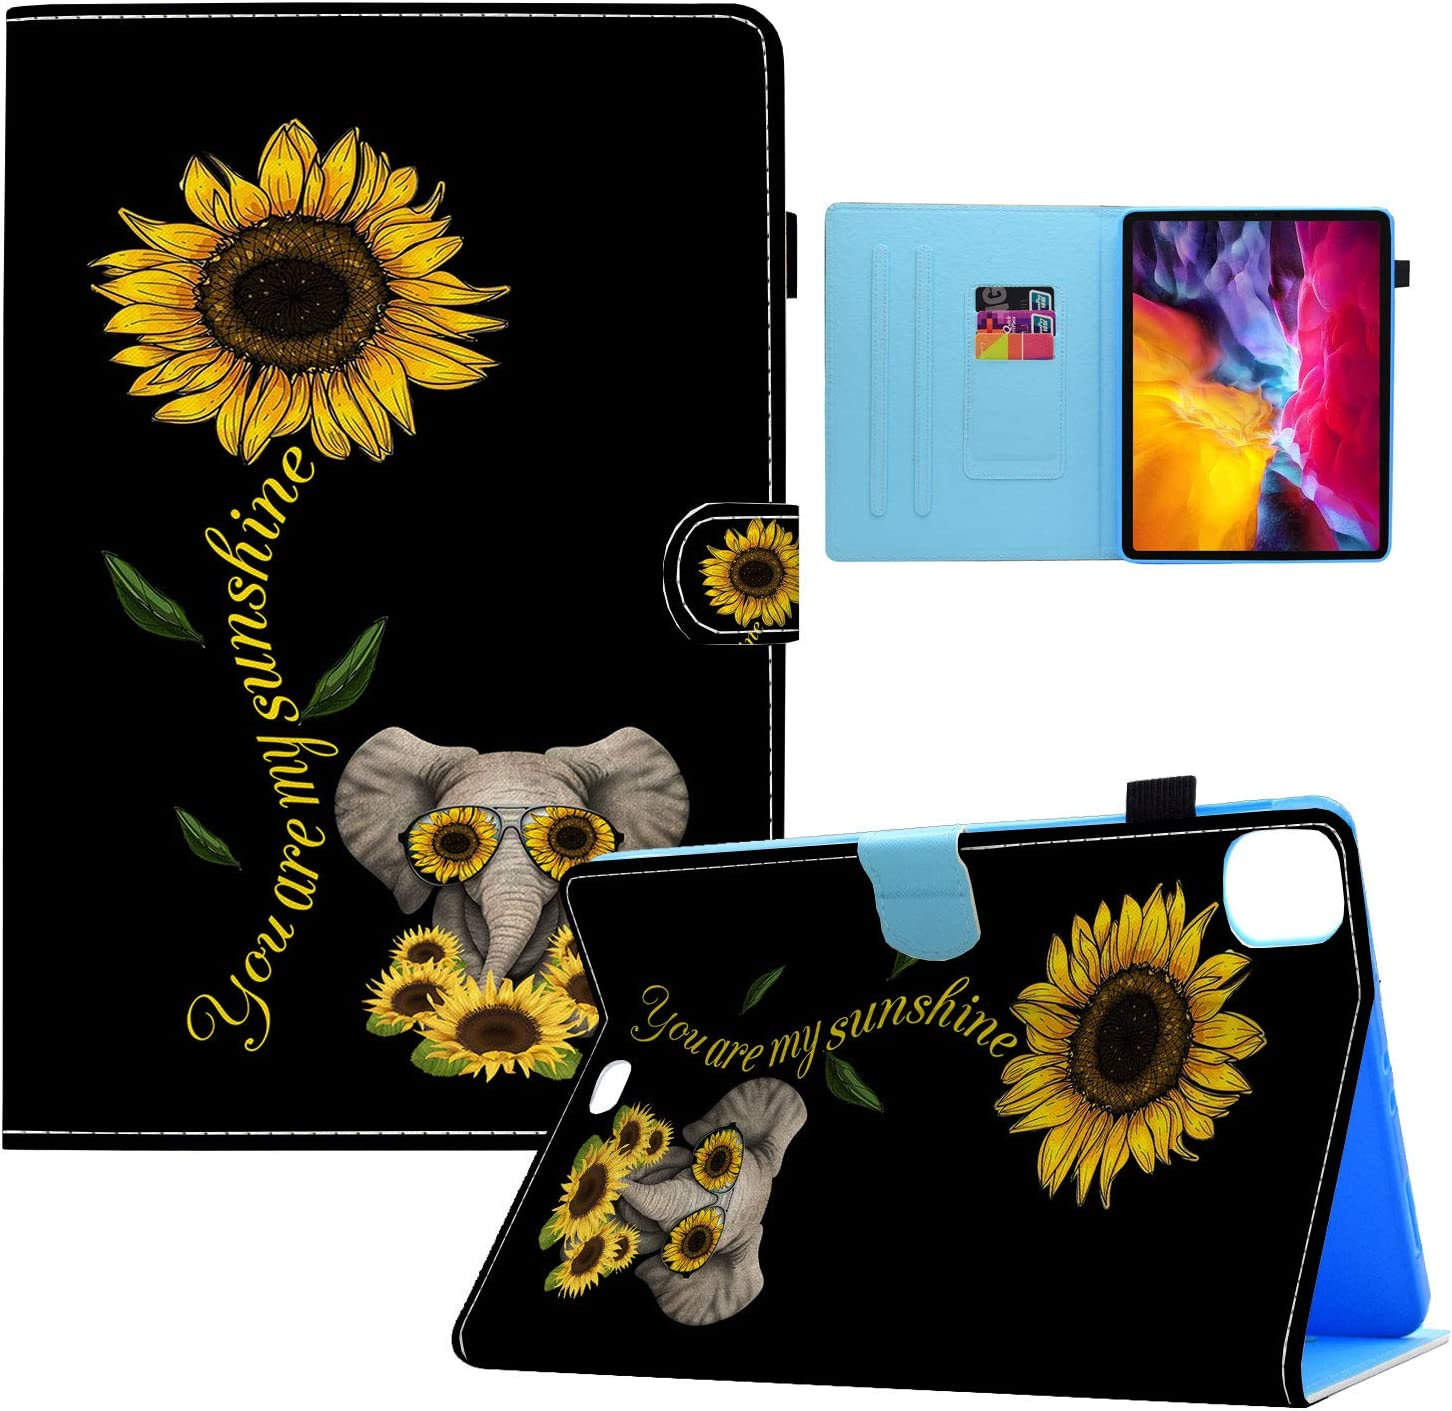 iPad Air 4 Case (4th Generation, 2020 Release),Sunflower and Cute Elephant Pattern Wallet PU Leather Stand Folio Slim Smart with Auto Sleep/Wake Case Cover for Apple iPad Air 4 10.9 Inch